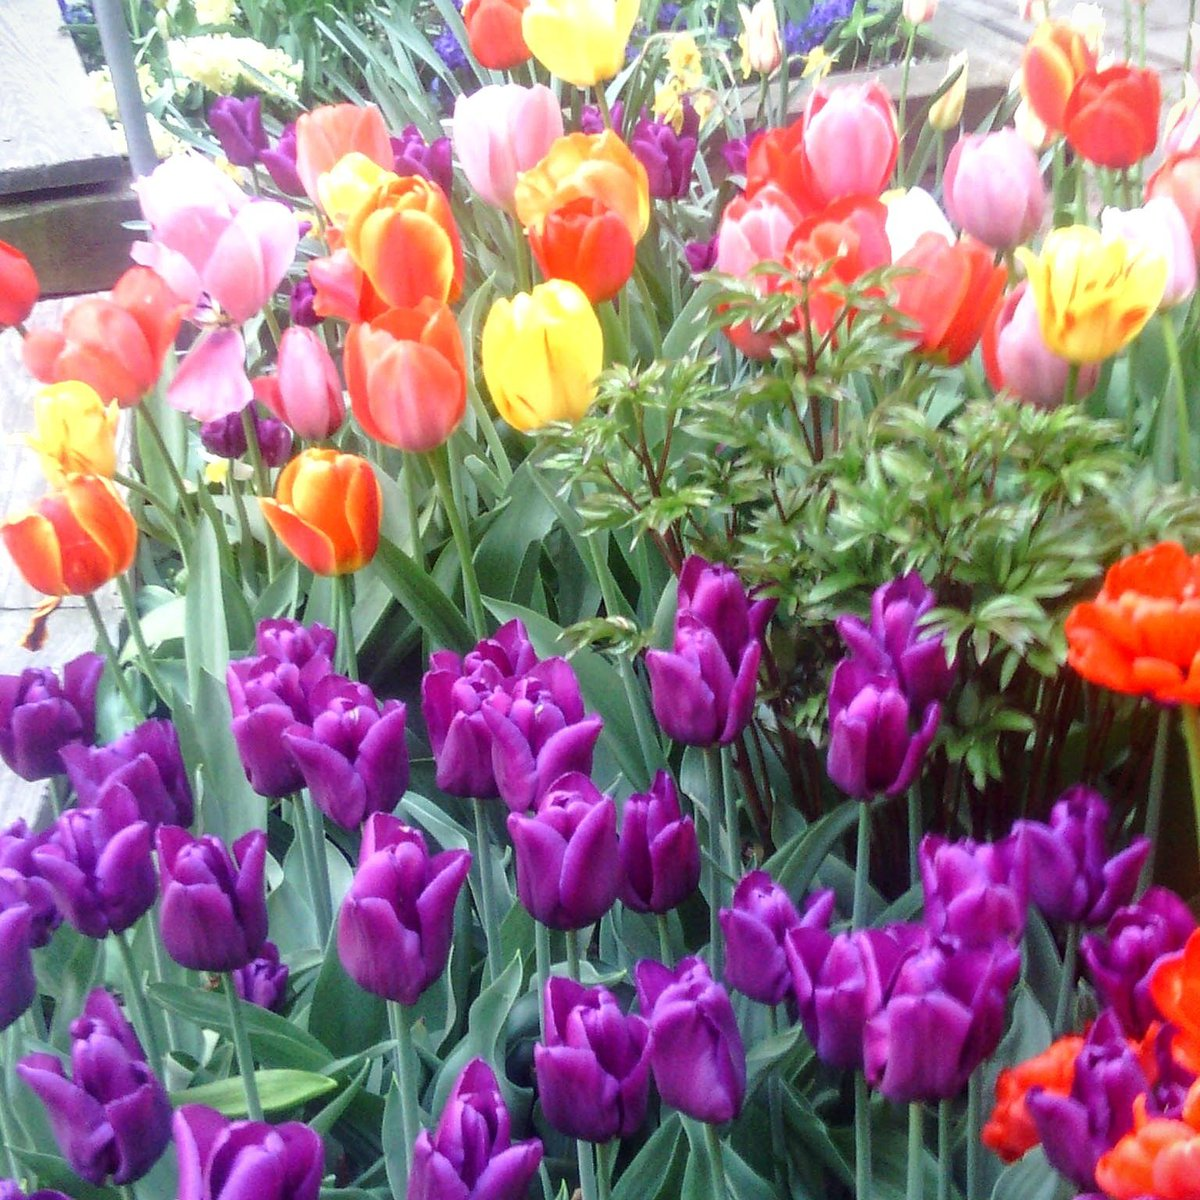 Multicolored Tulips At Westside Community Garden, NYC